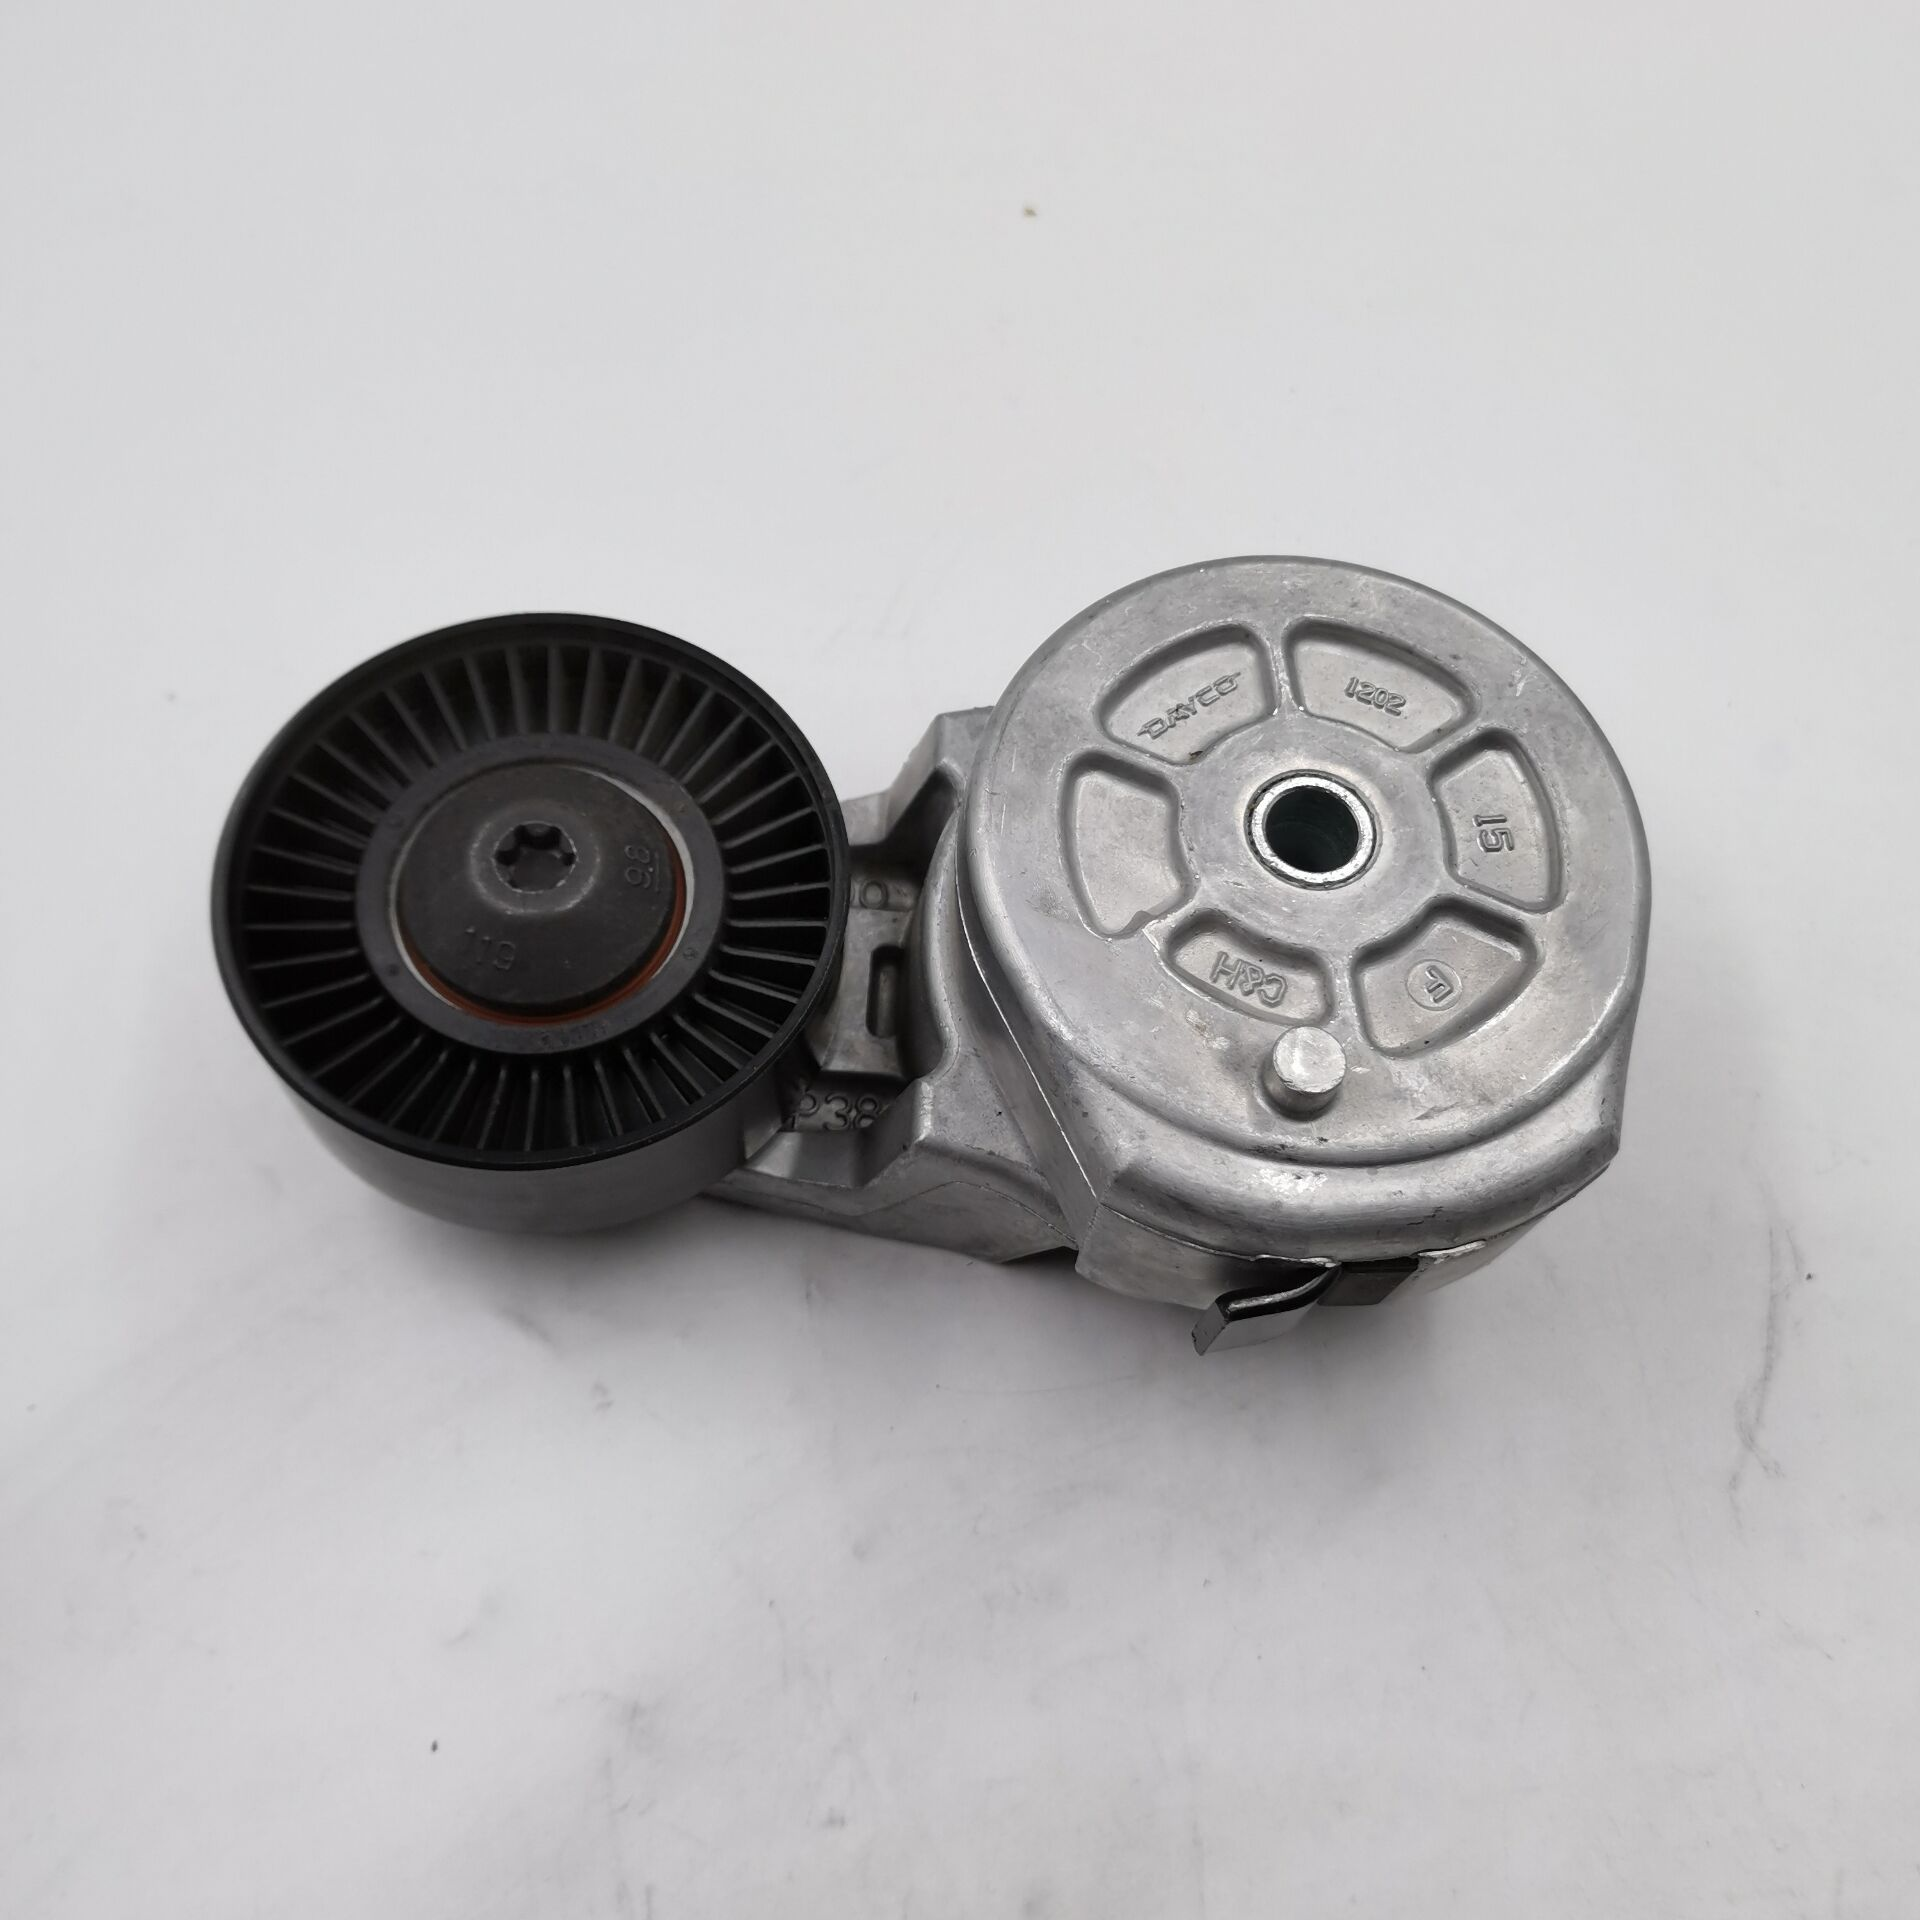 BELT TENSIONER 8970370560 FIT FOR GENERAL MOTOR